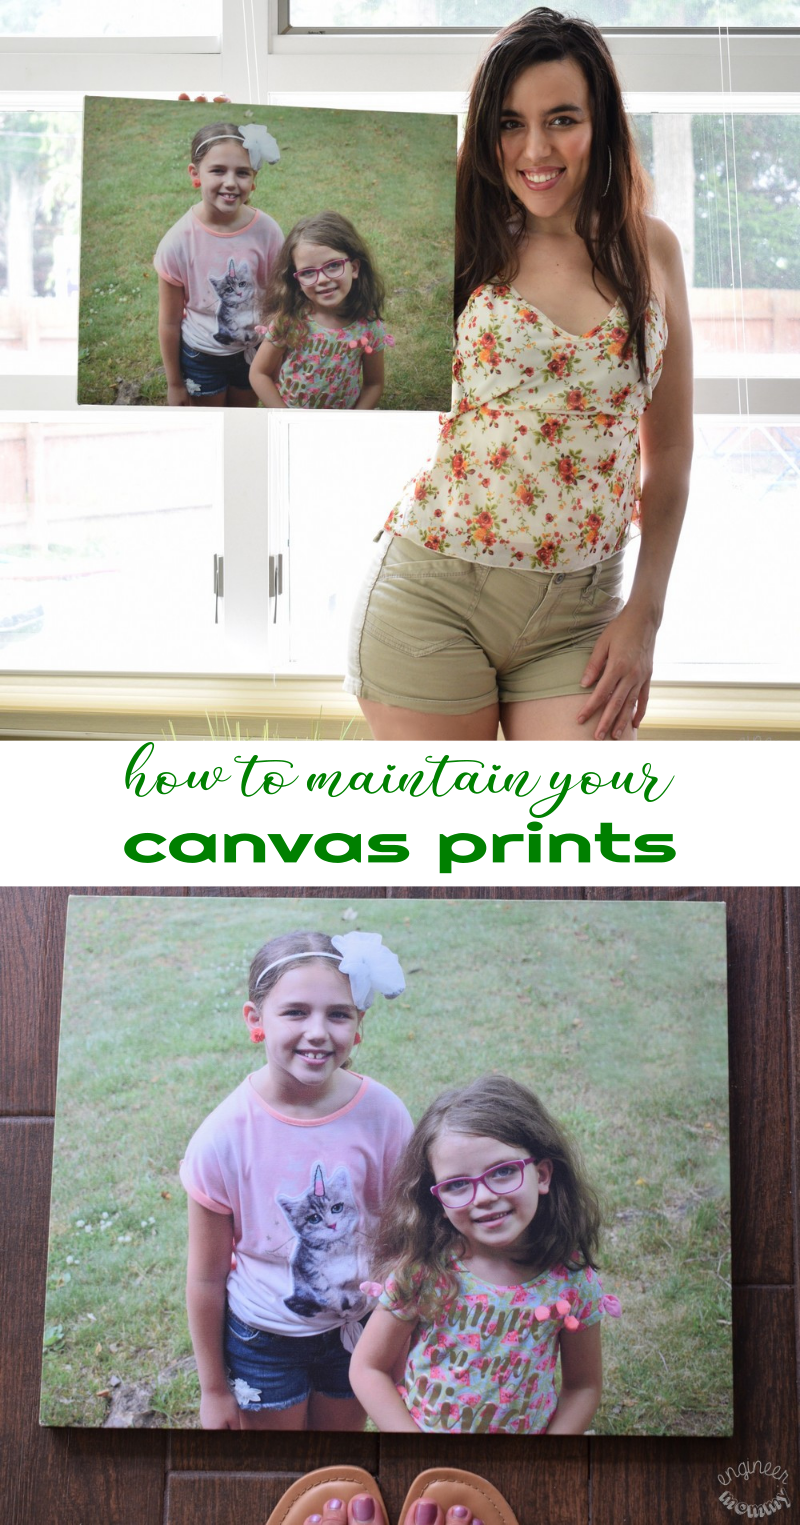 Tips to Keep Your Canvas Prints Looking Great